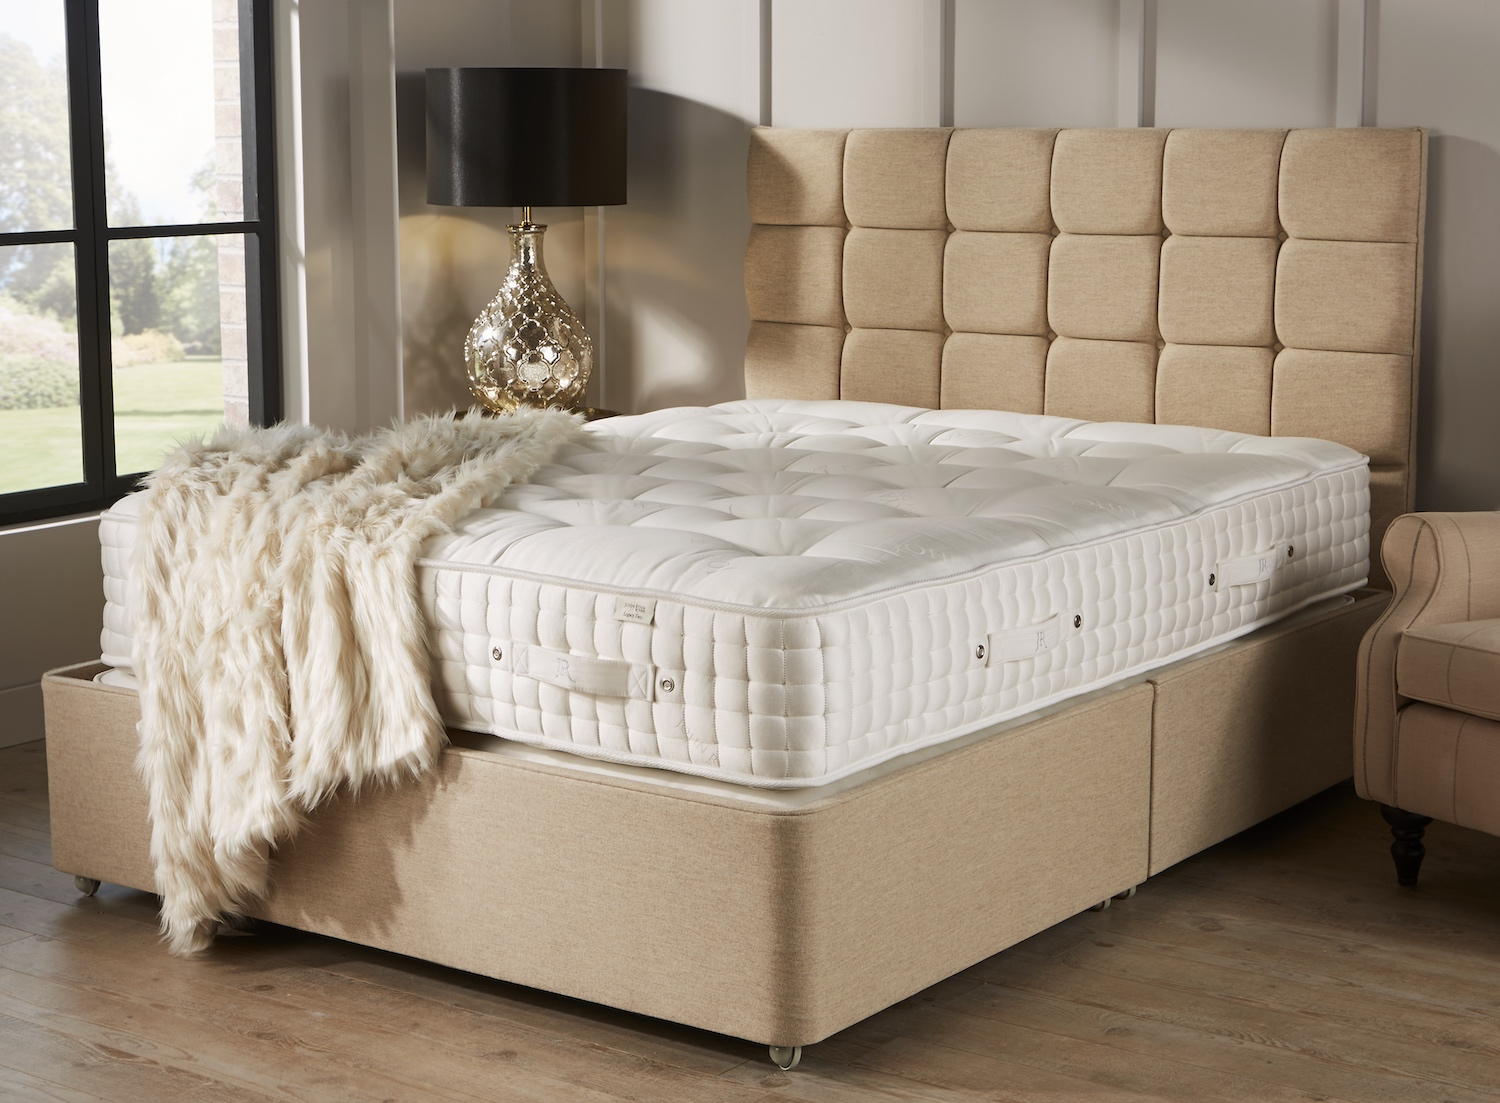 The Worlds Most Luxurious Bed Base The Legacy Mattress